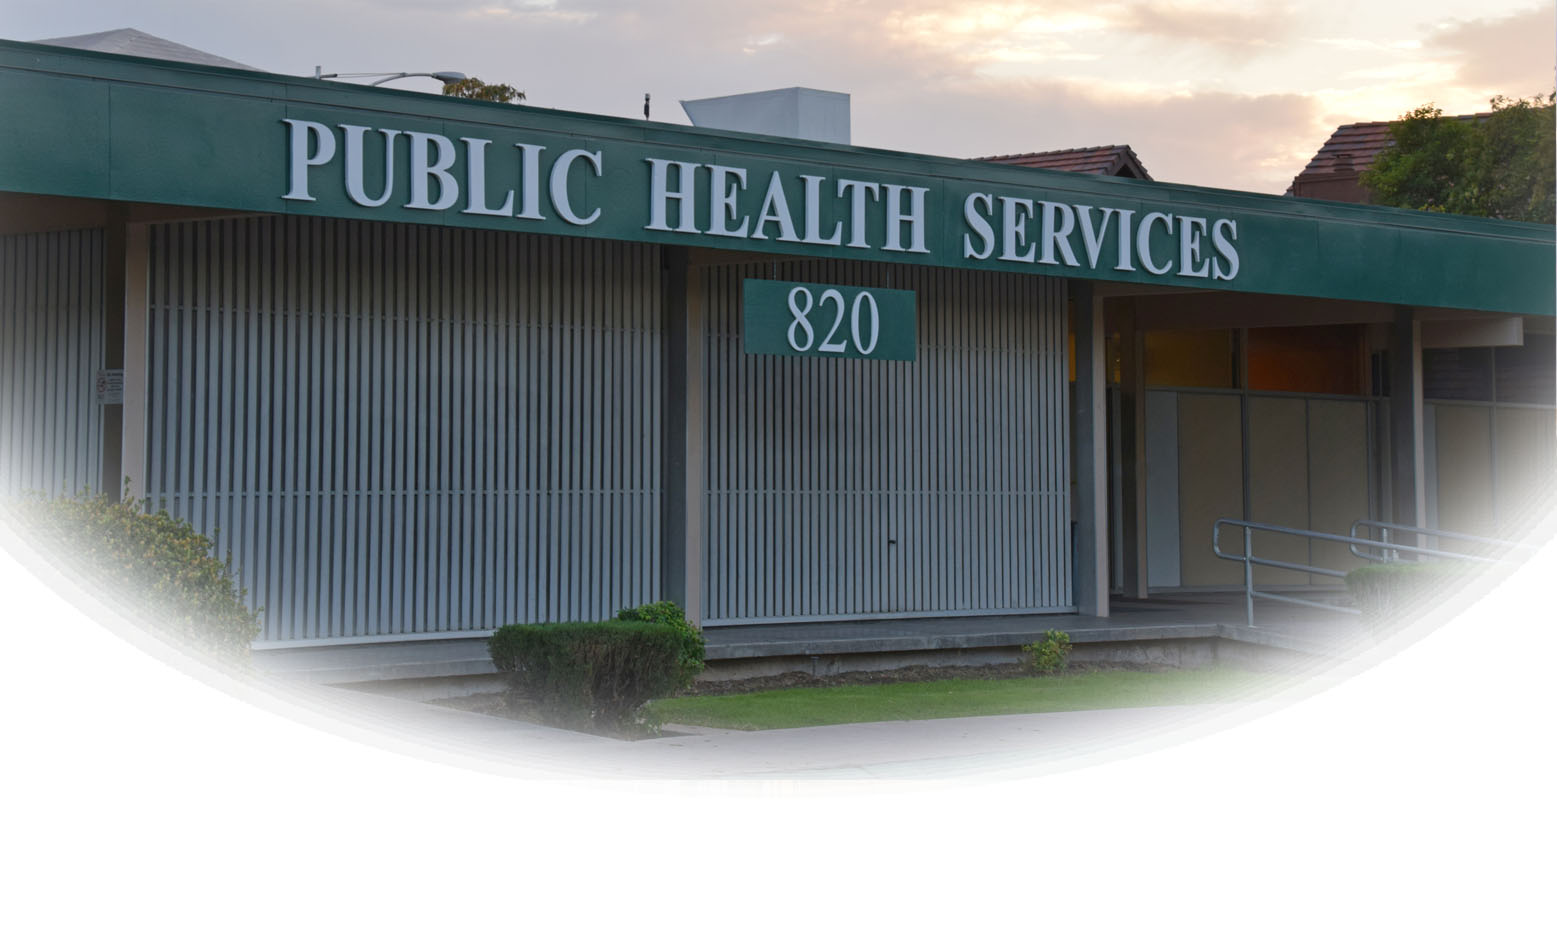 SCHSA Main Campus Public Health Sign